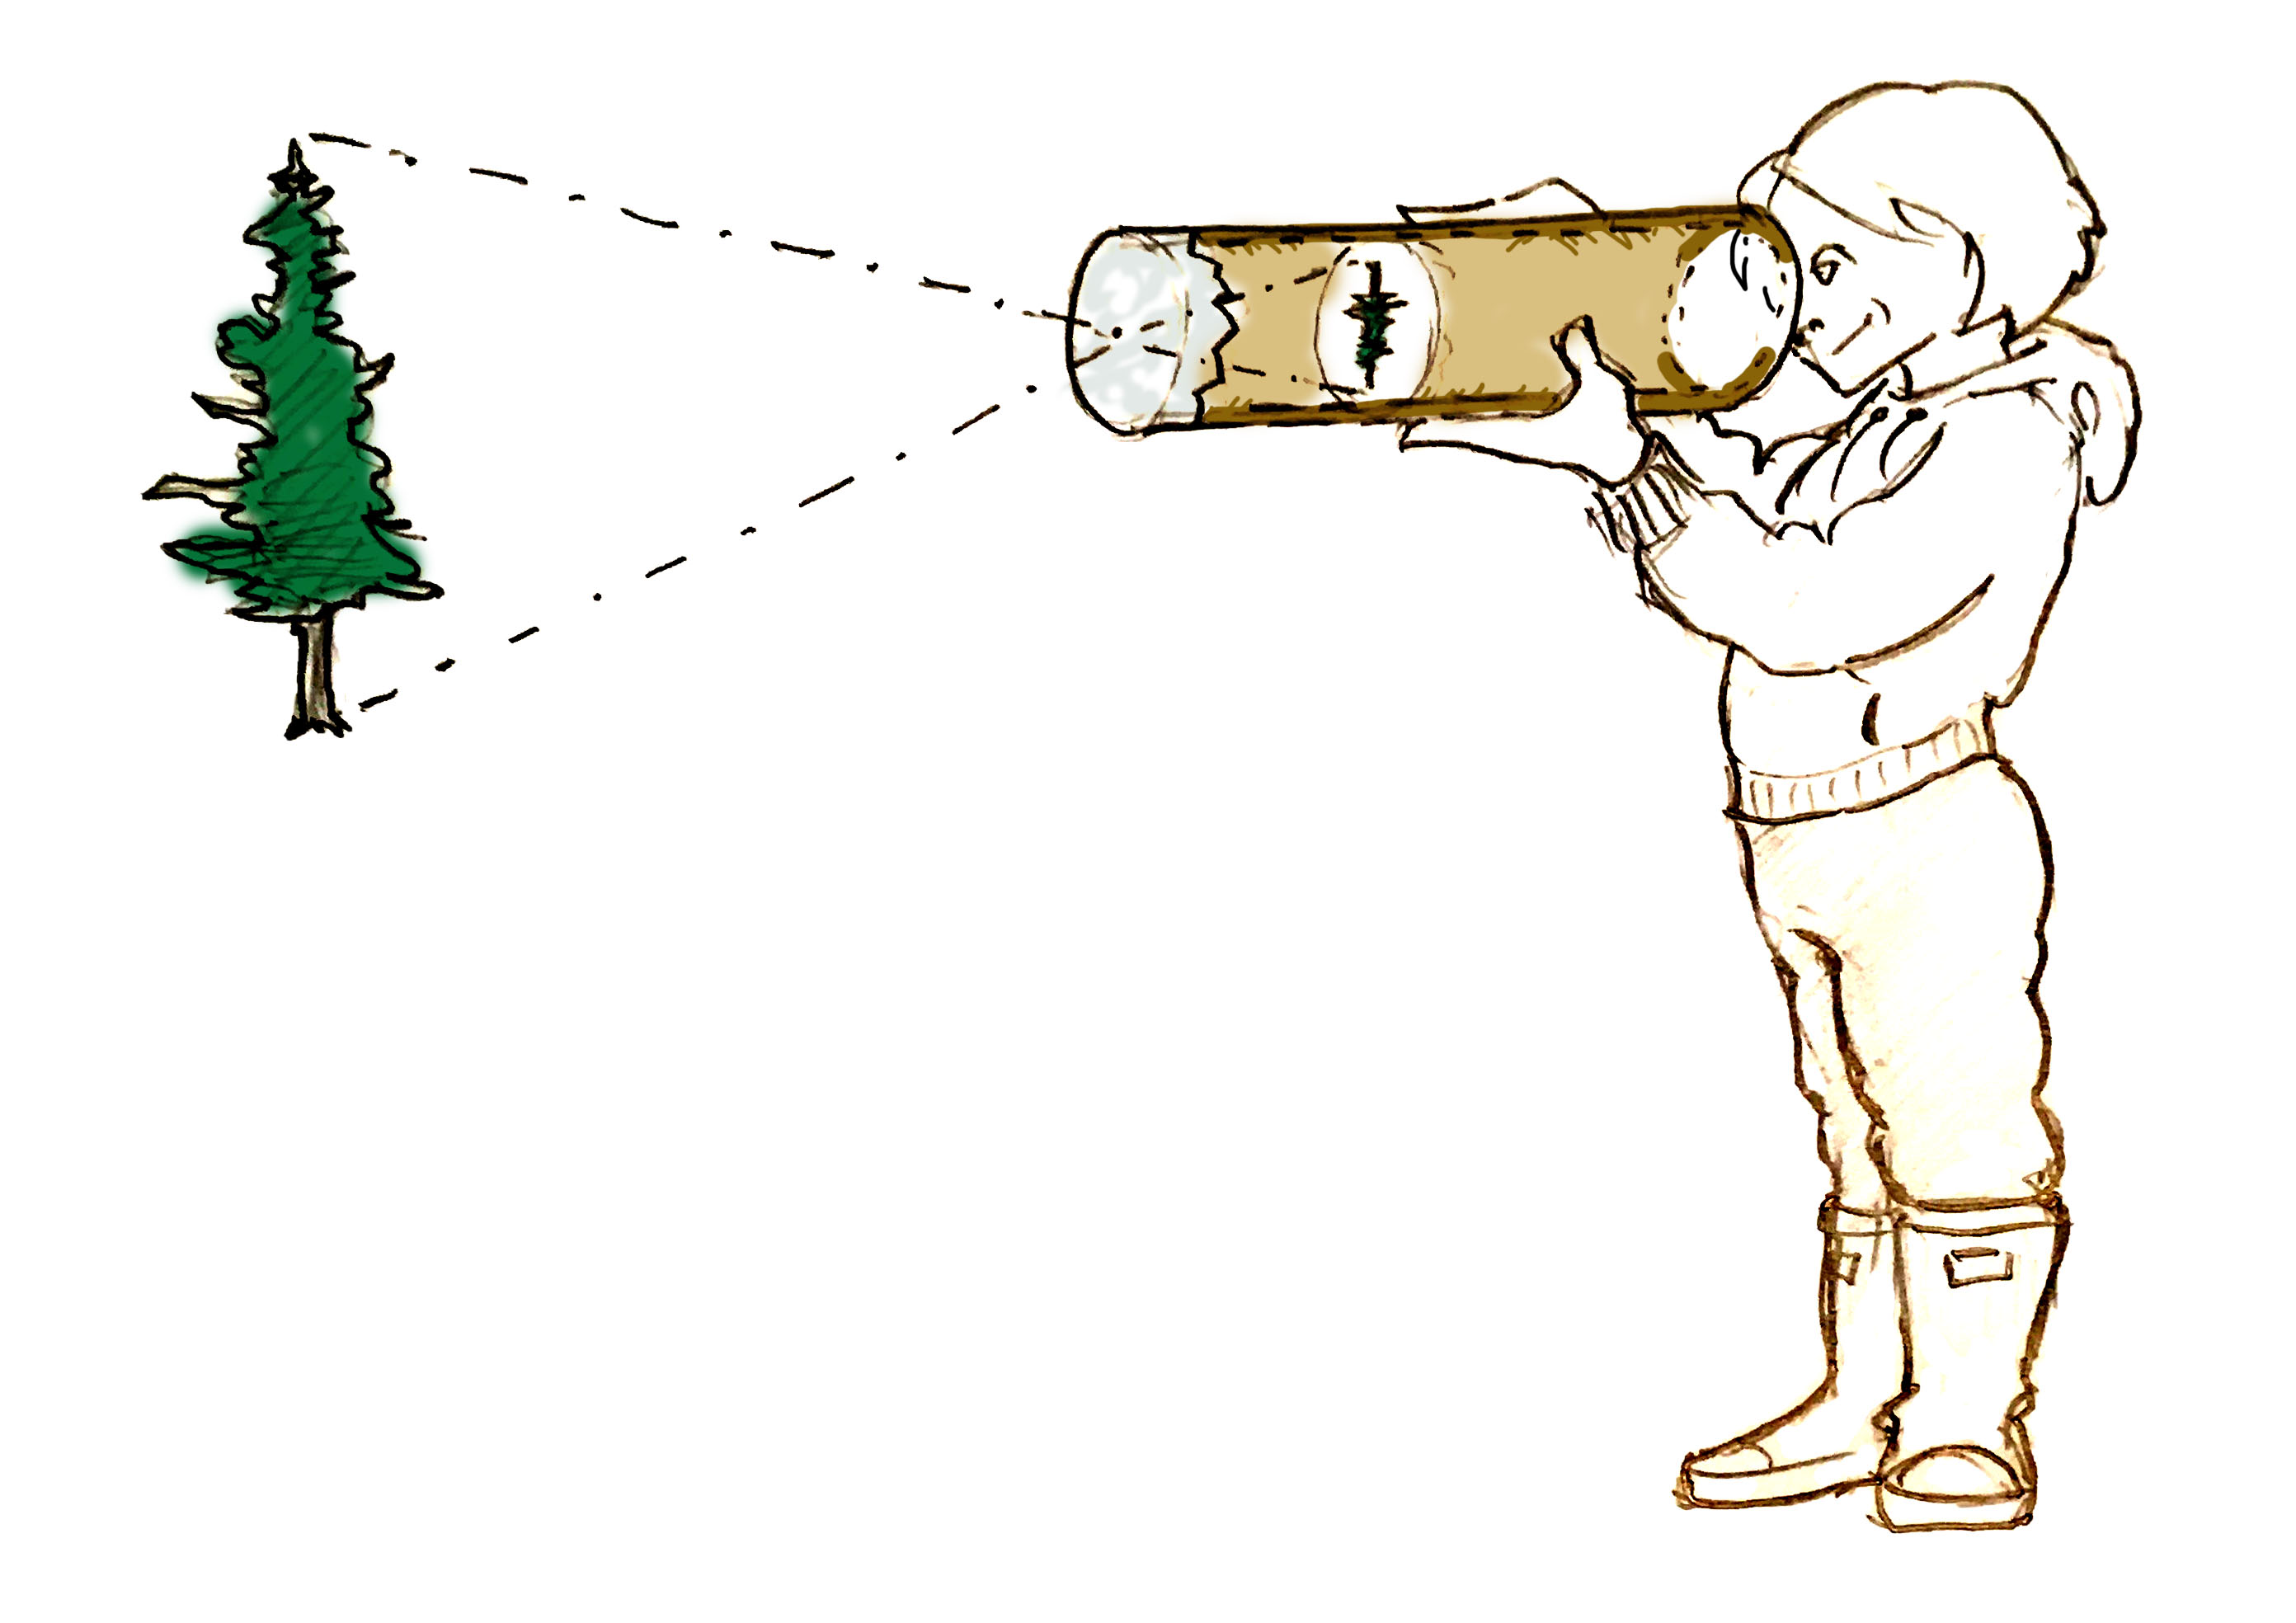 Illustration of a homemade camera obscura showing how a tree appears upside down.